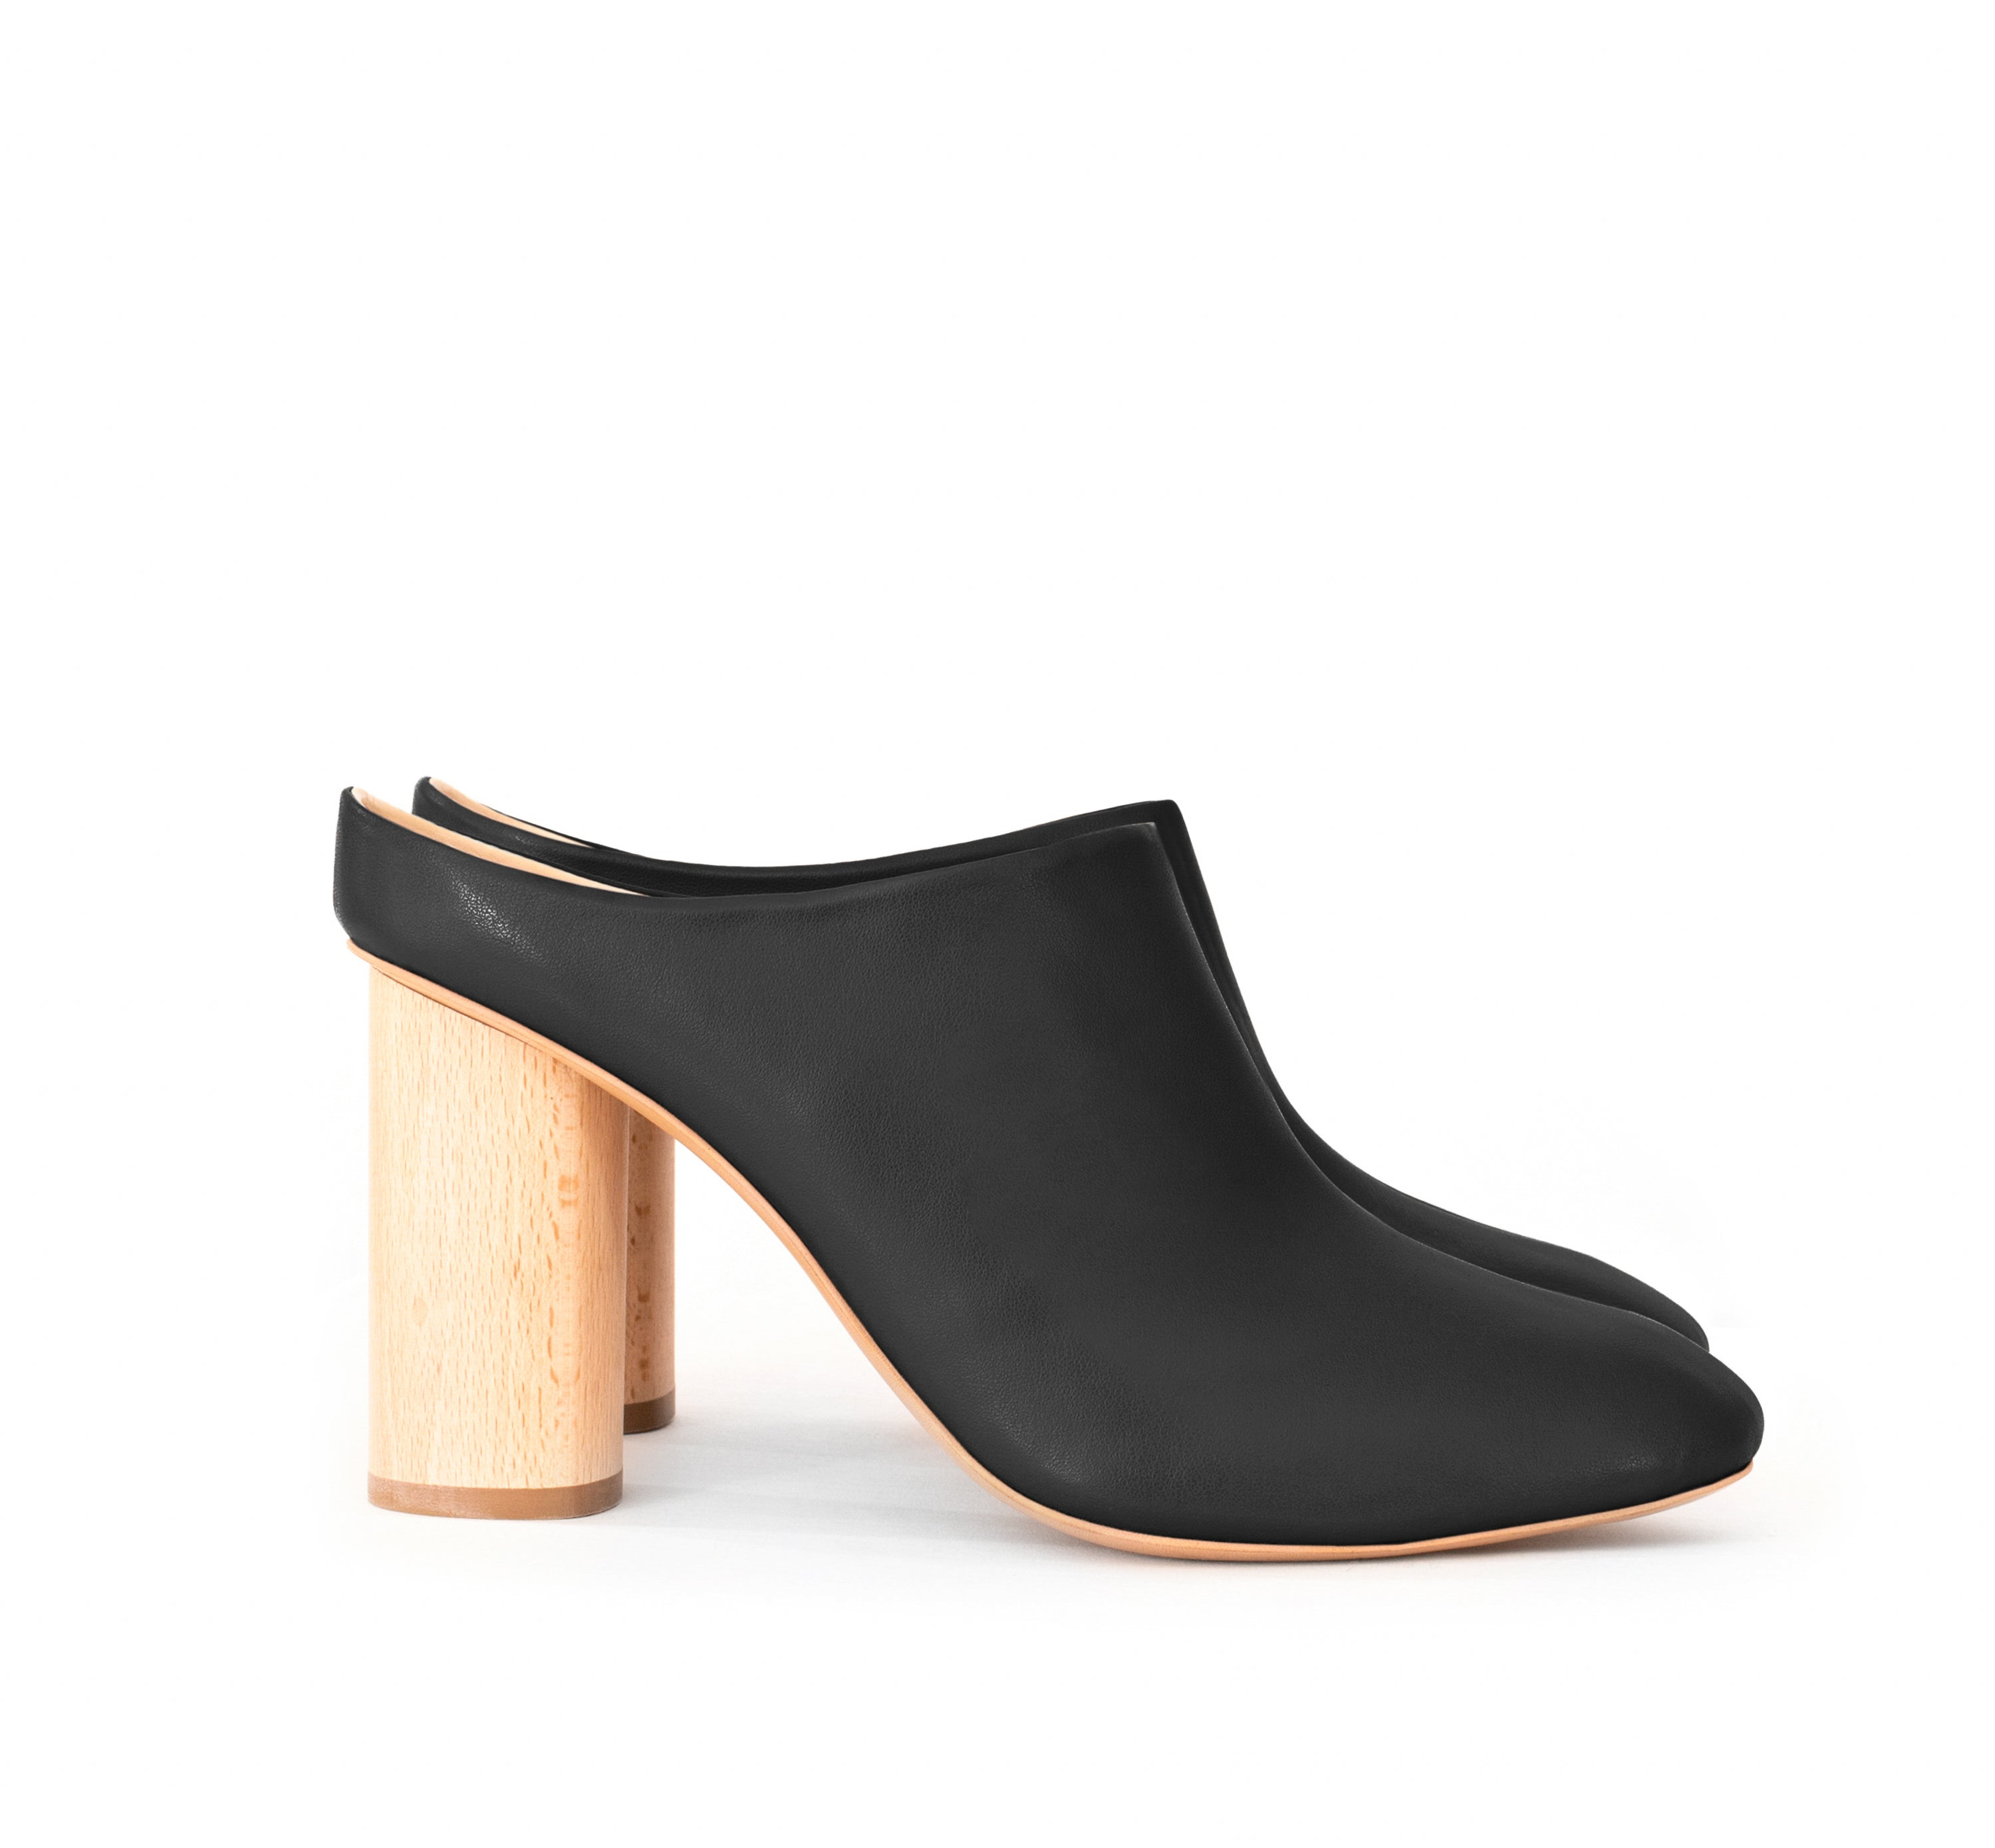 High Mules in certified black faux-nappa, breathable lining with natural wood heel. Luxury vegan shoes. Sydney Brown Spring Summer 2019. Sustainable, eco-friendly SS19 fashion